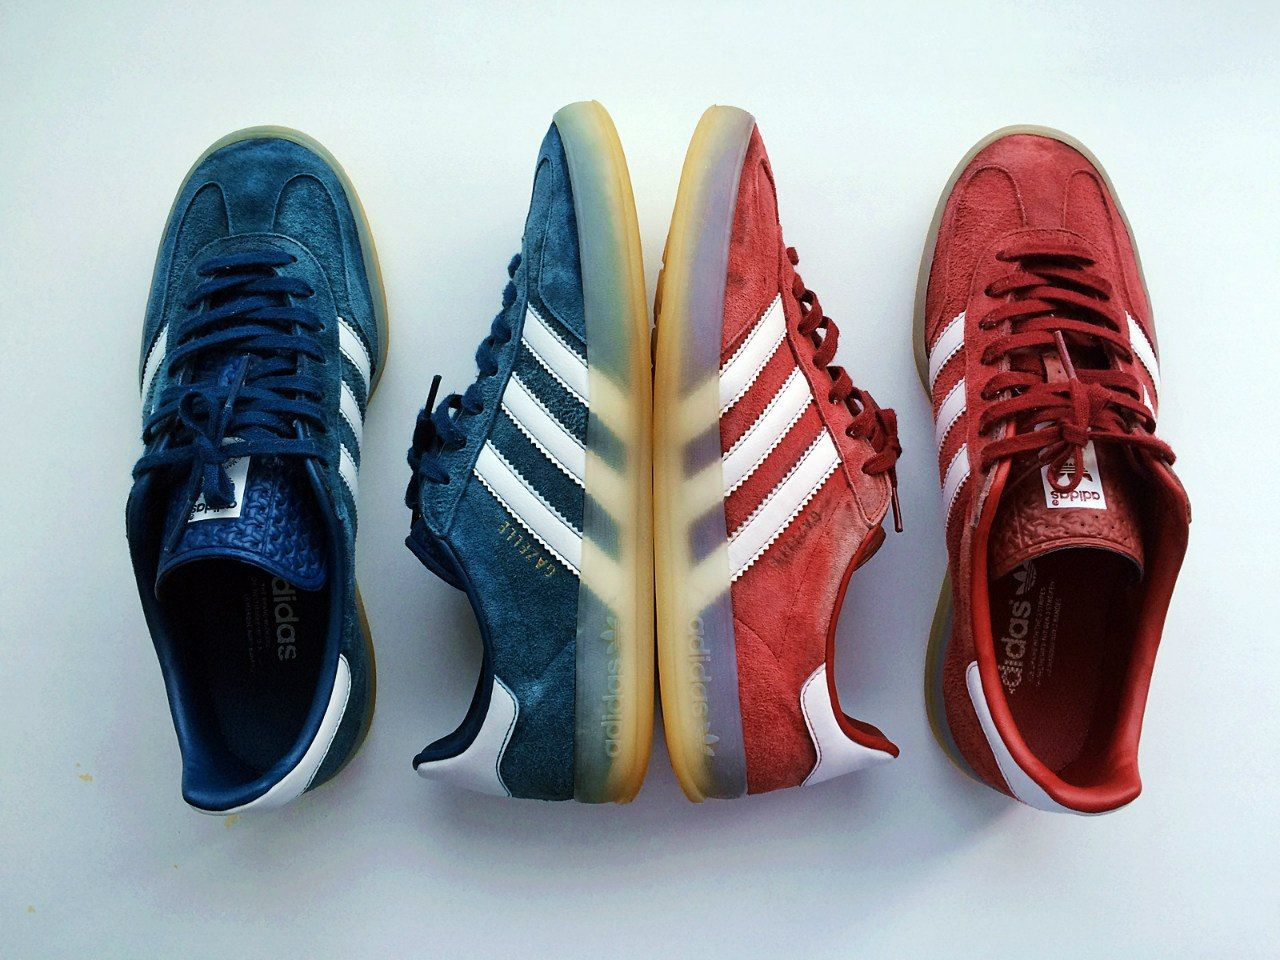 Adidas Gazelle Indoor: True Blue & Nomad Red | Things